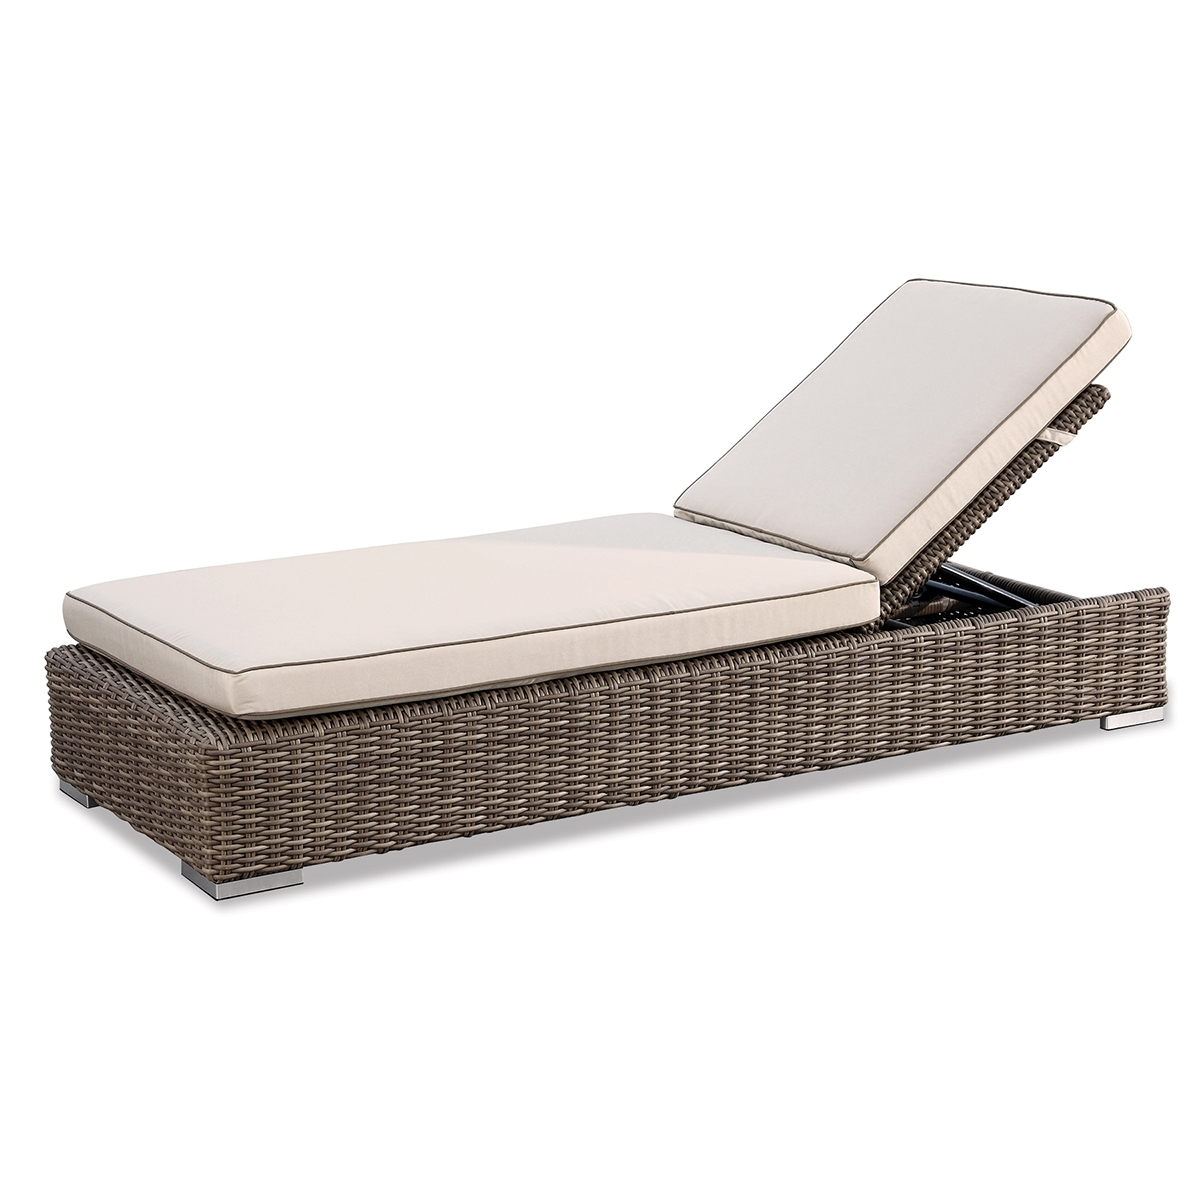 Most Popular Wicker Chaise Lounge (View 3 of 15)